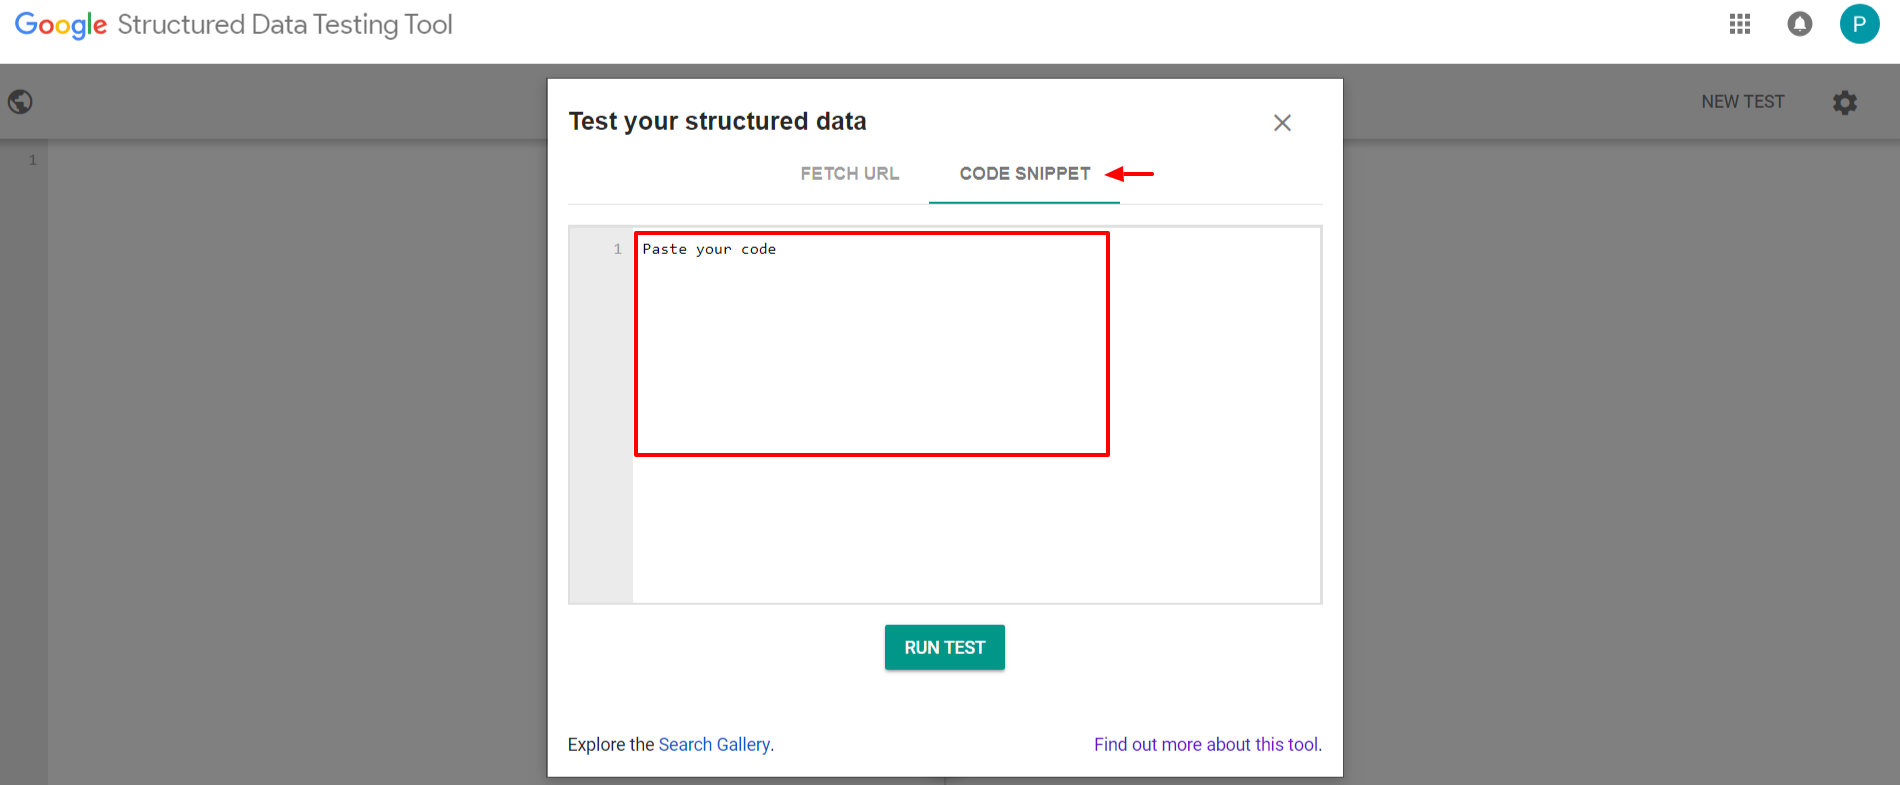 Google Stuctured Data Testing Tool